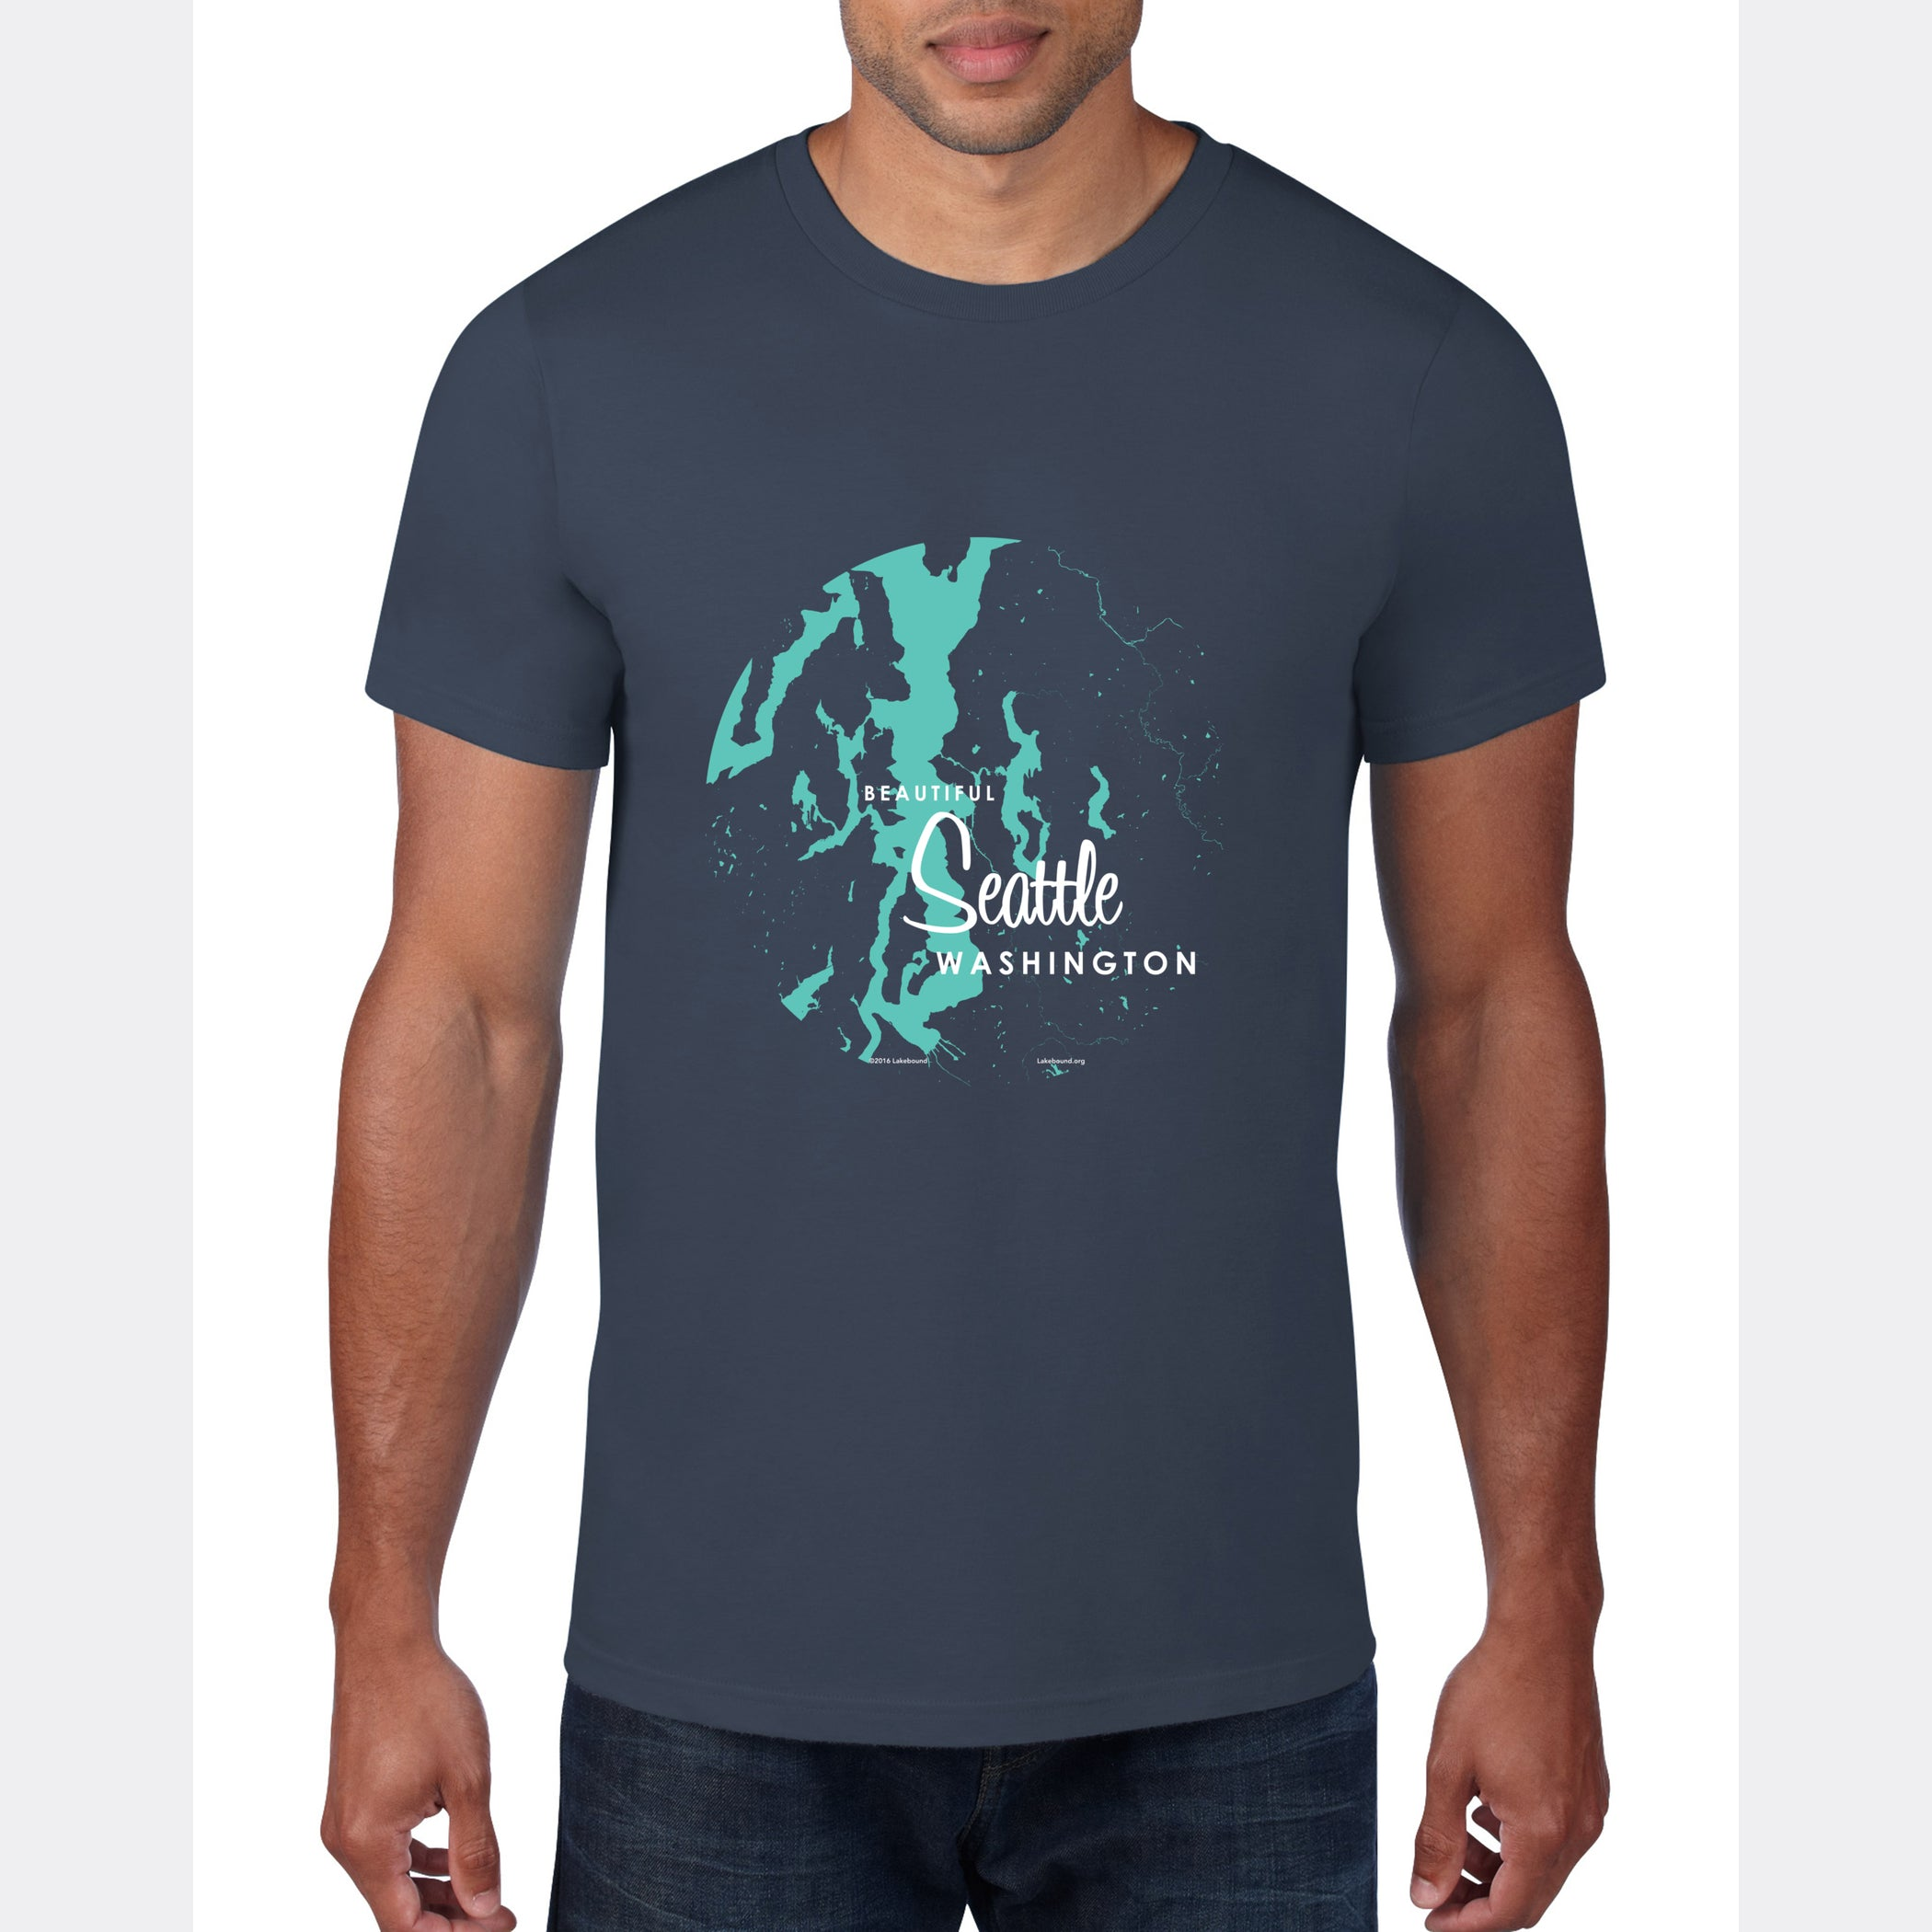 Seattle Washington, T-Shirt